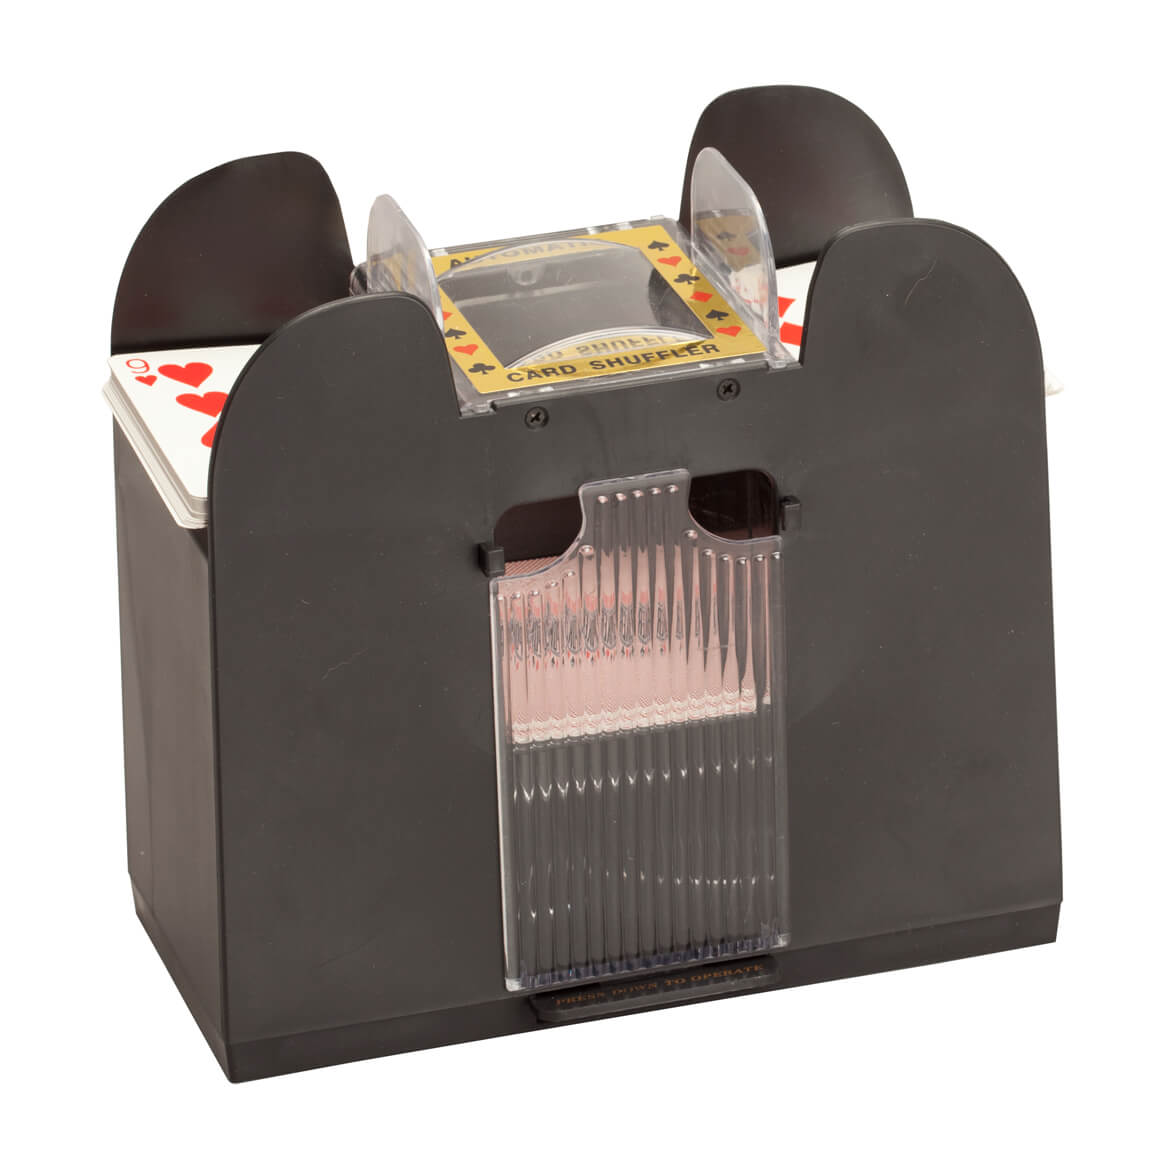 cards shuffler machine